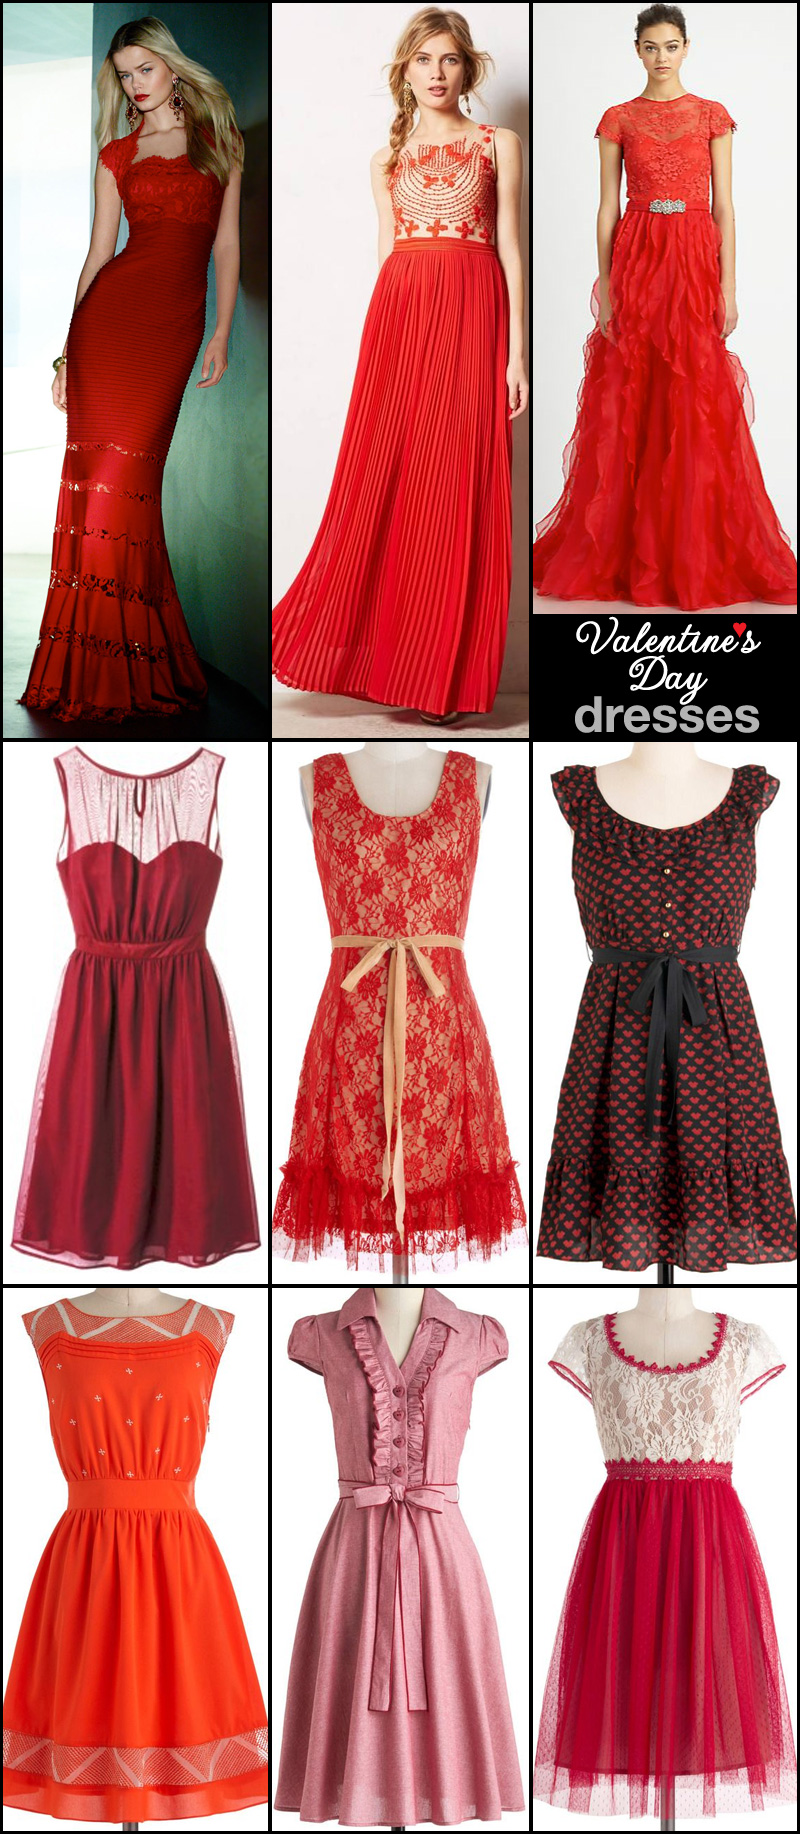 9 Red Valentine's Day Dresses . . . a round-up of my favorites